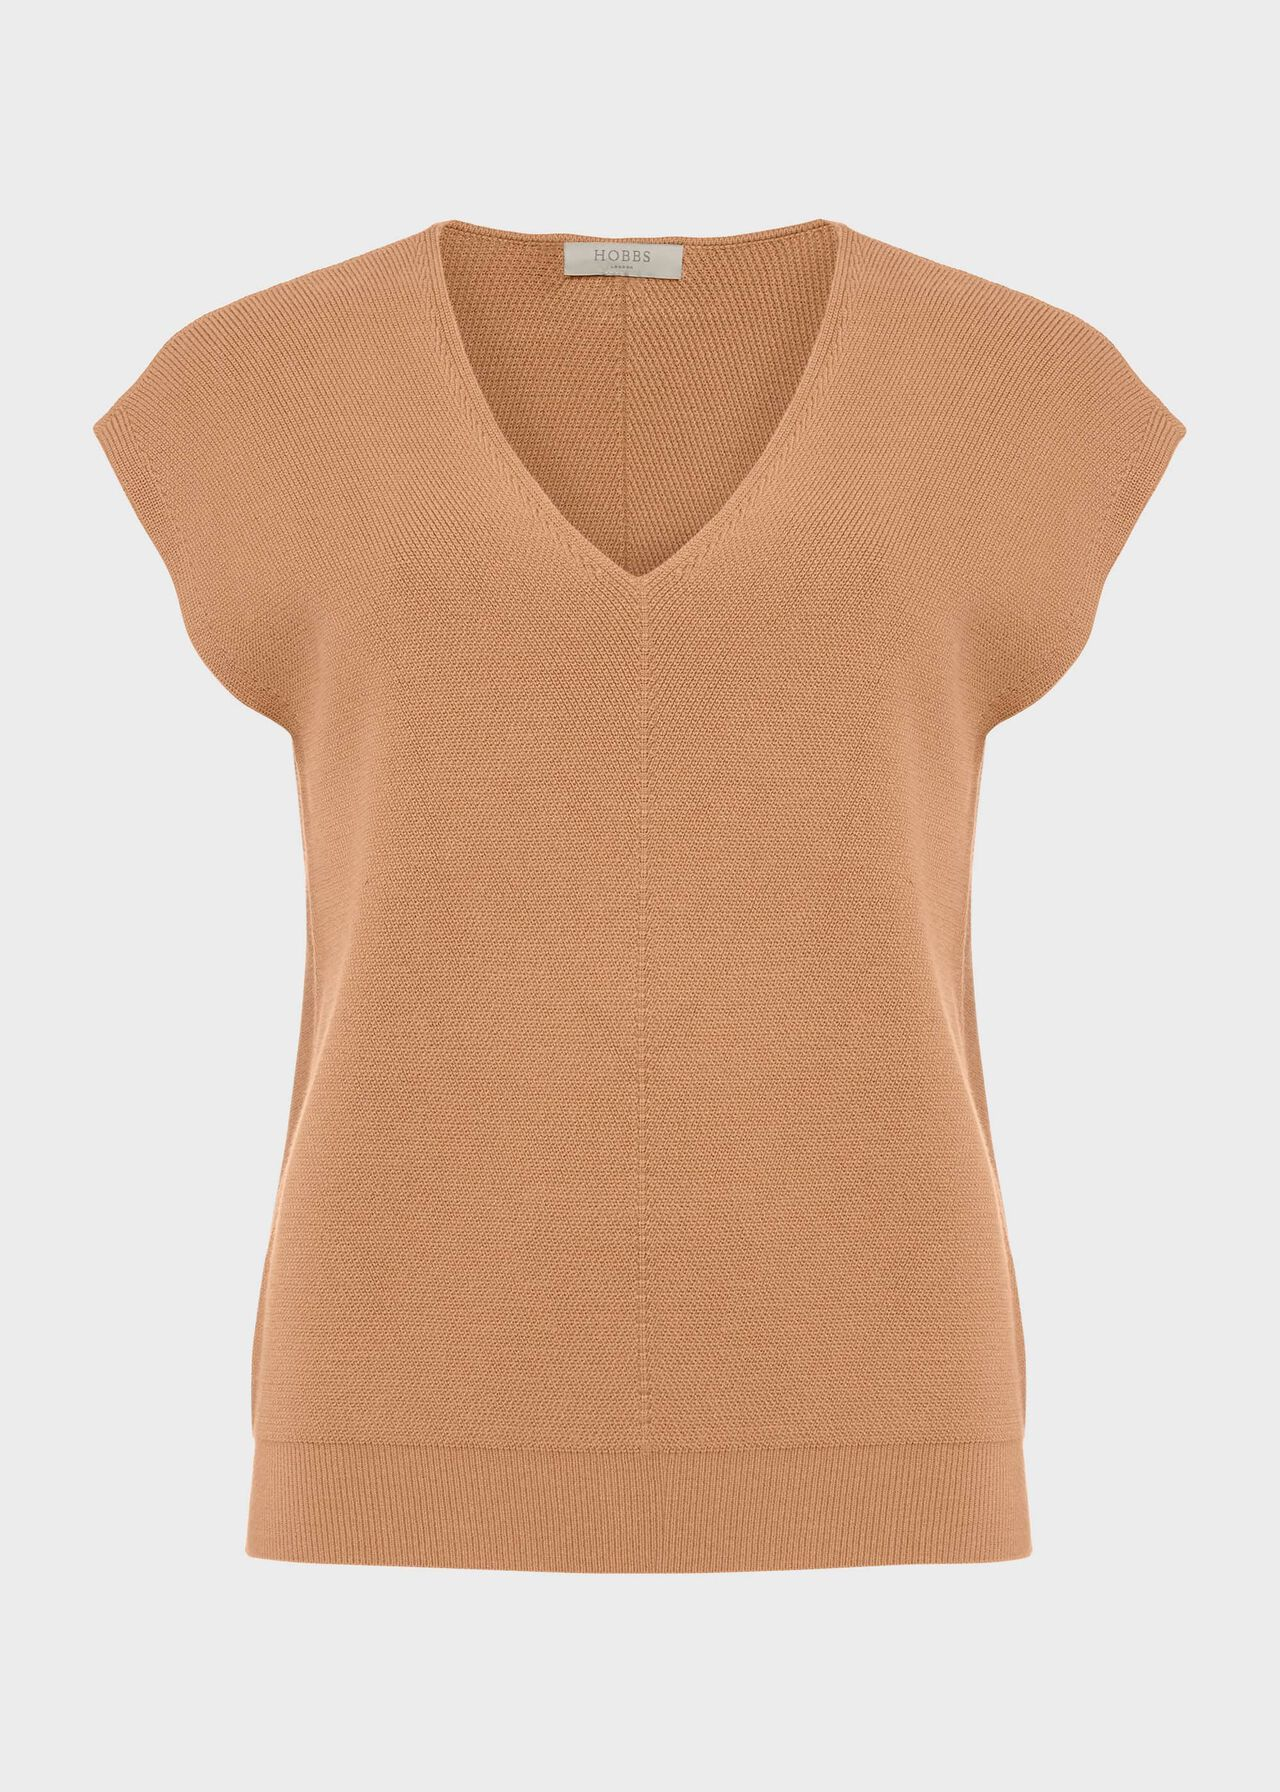 Marlow Knitted Top, Toffee, hi-res